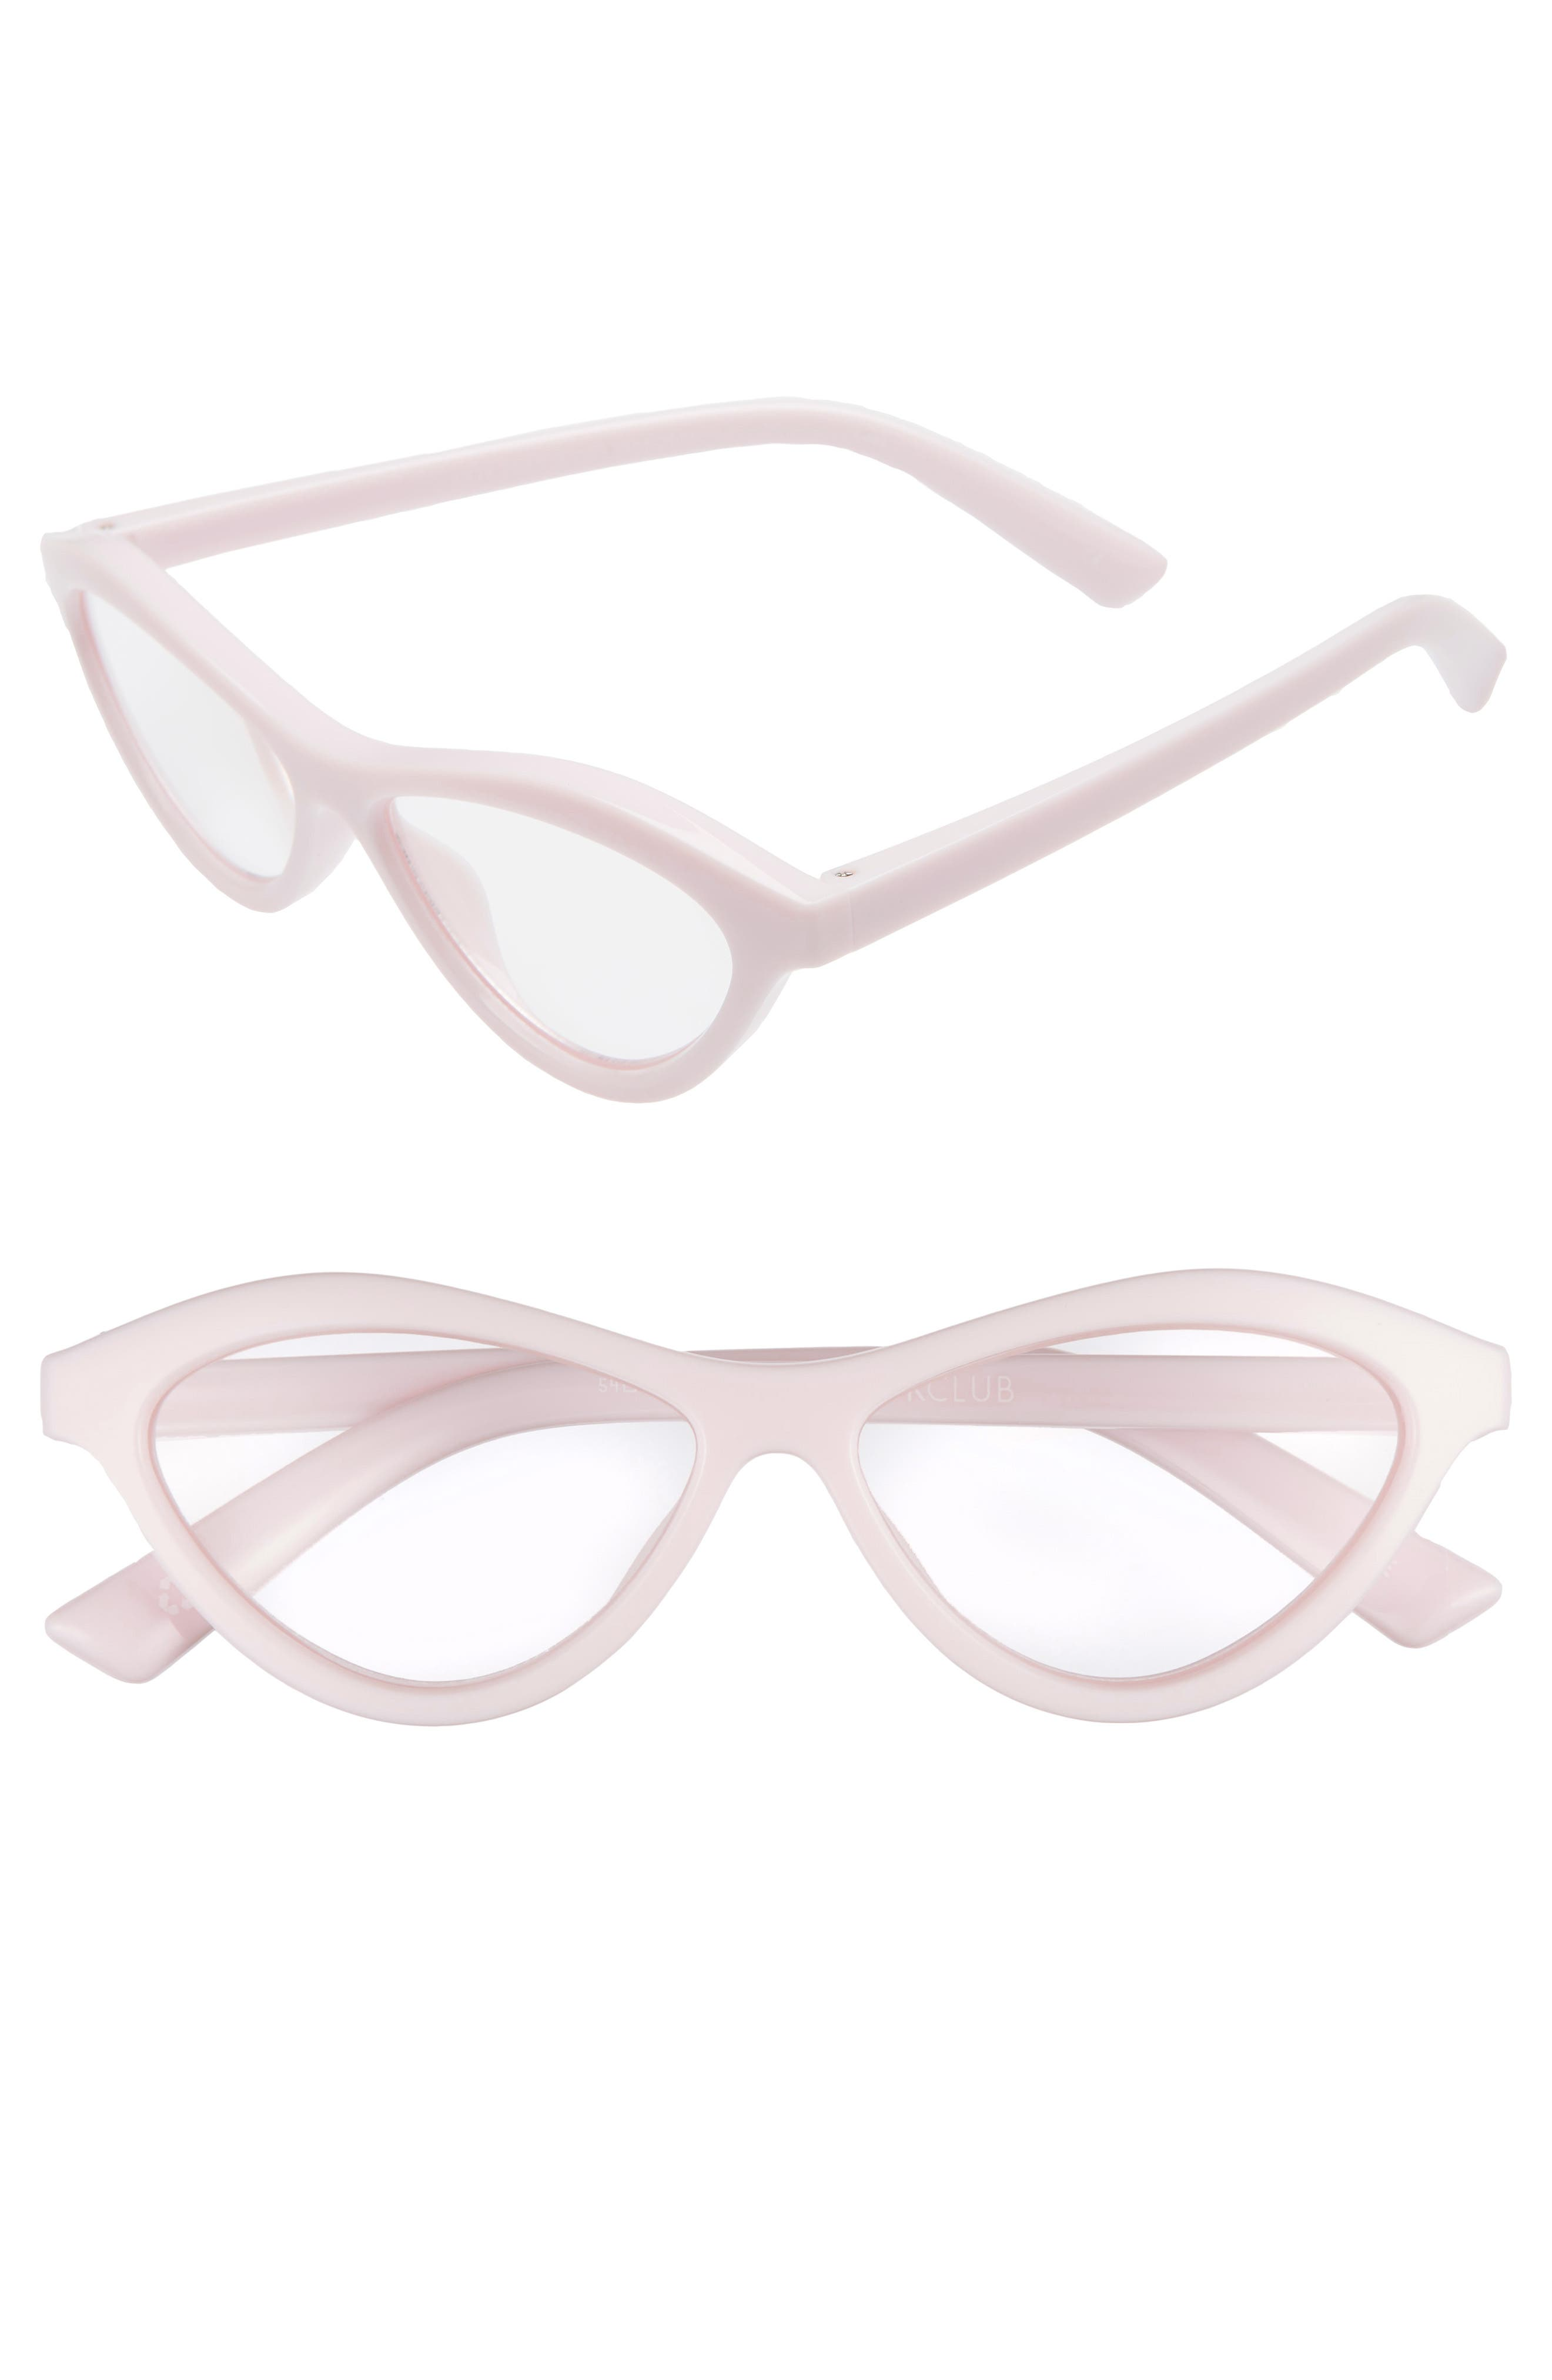 Fifty Fails a Day 54mm Reading Glasses,                         Main,                         color, POWDER PINK